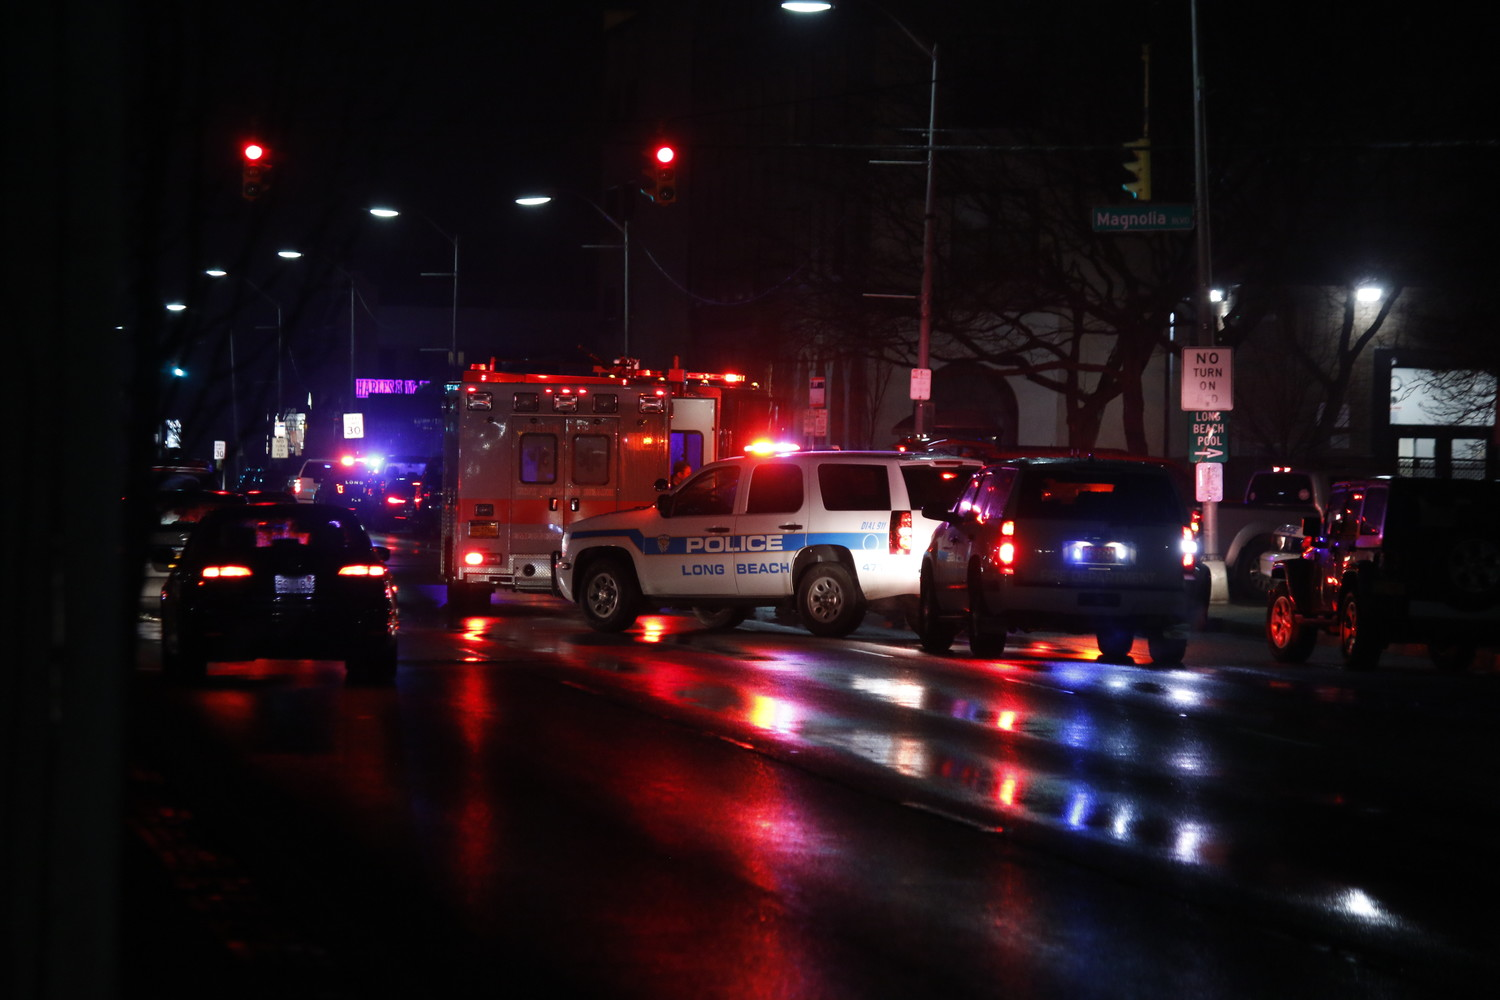 A driver struck a pedestrian at around 9:30 p.m. Thursday night.